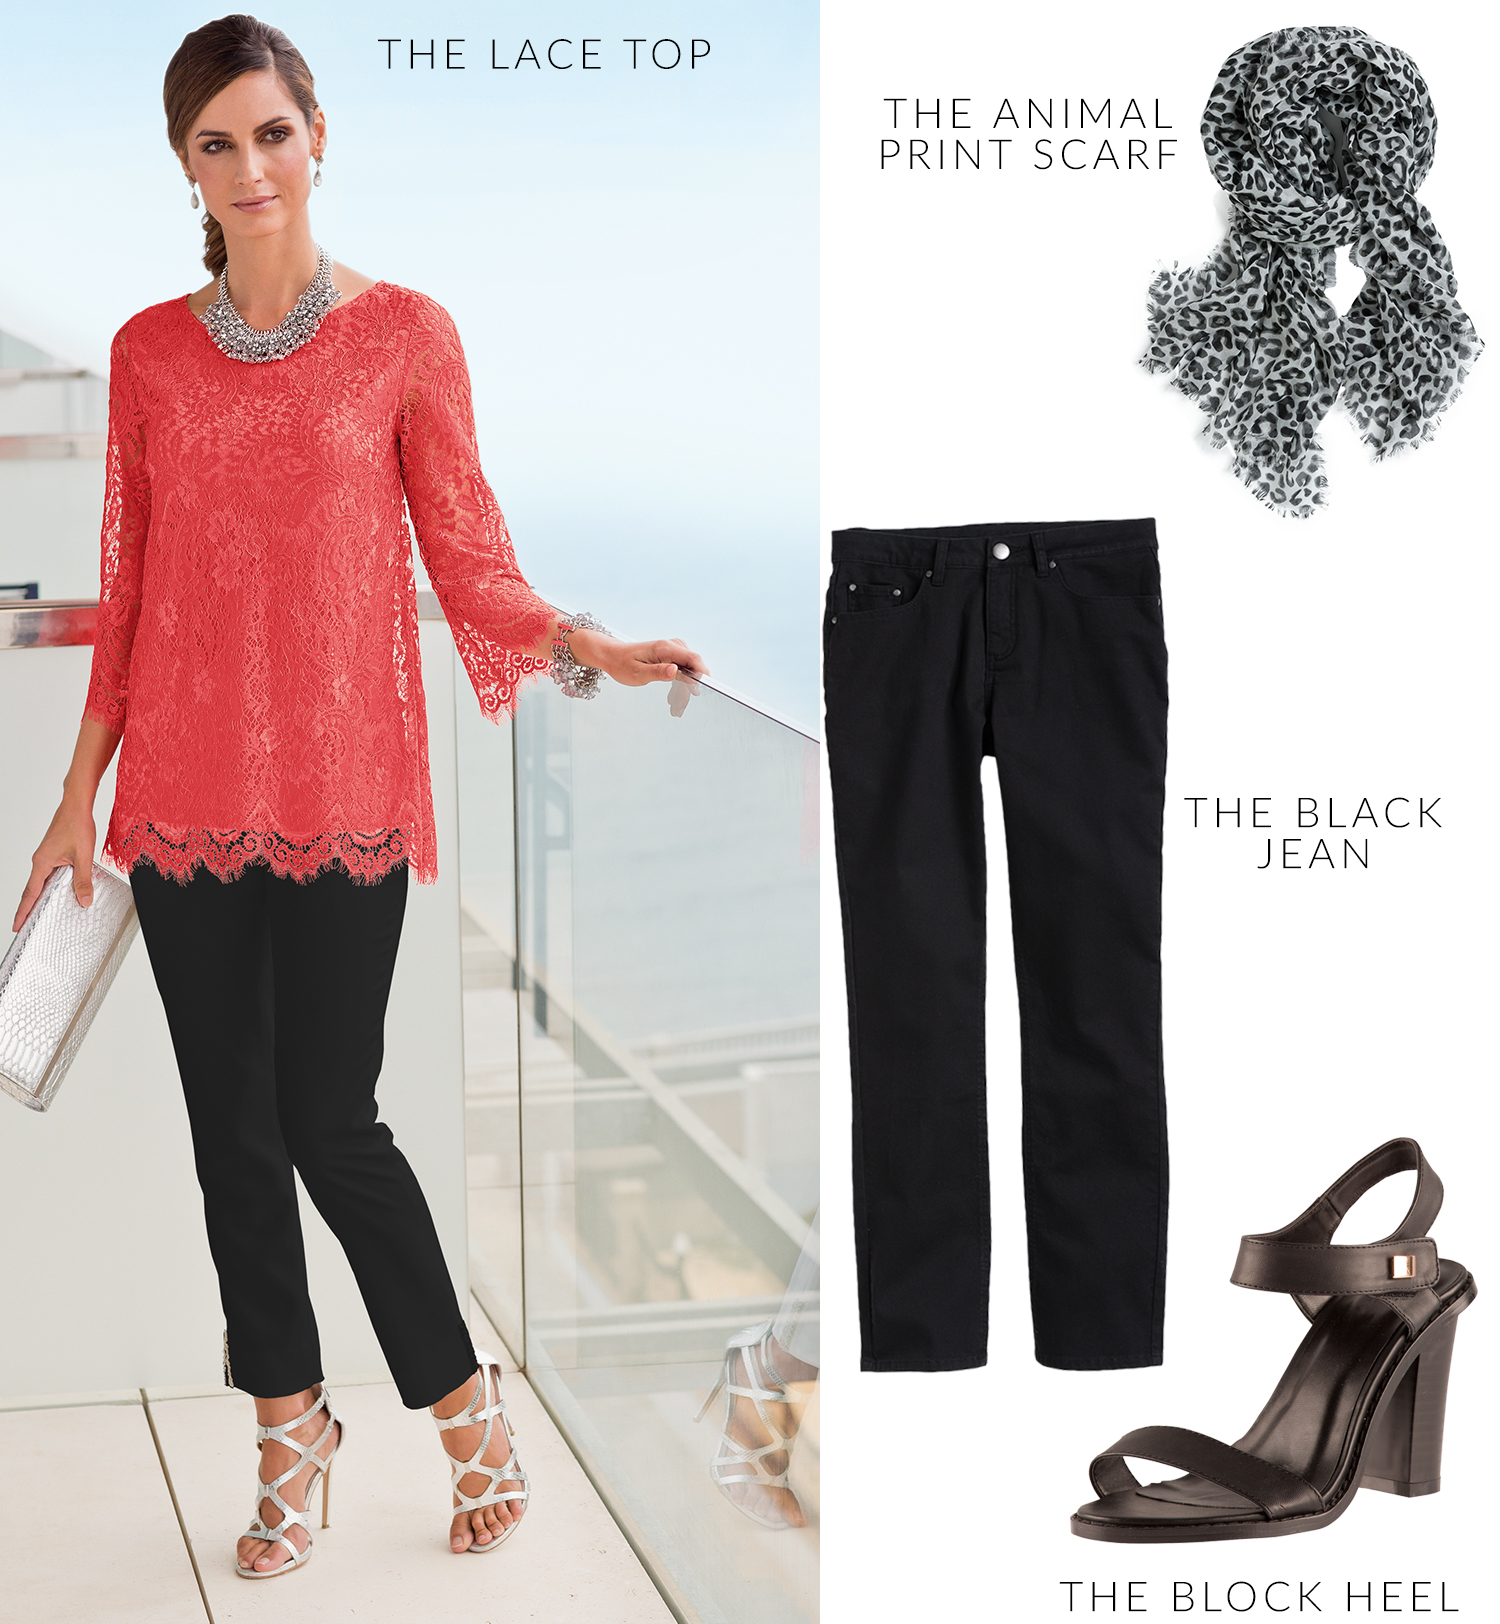 The Lace Top